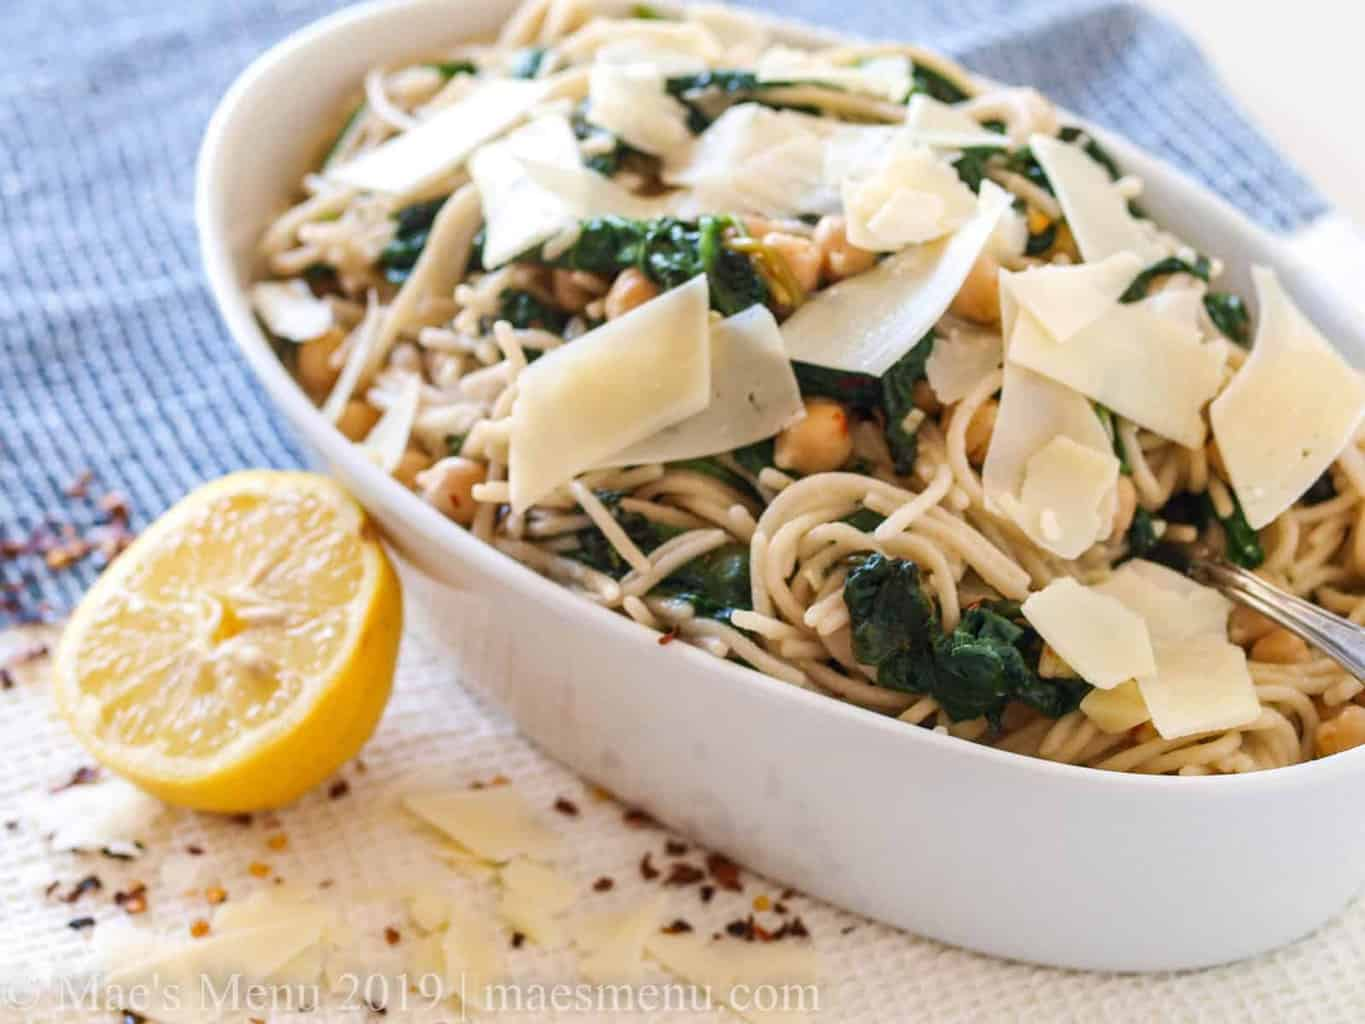 White bowl of spaghetti and garlicky greens.